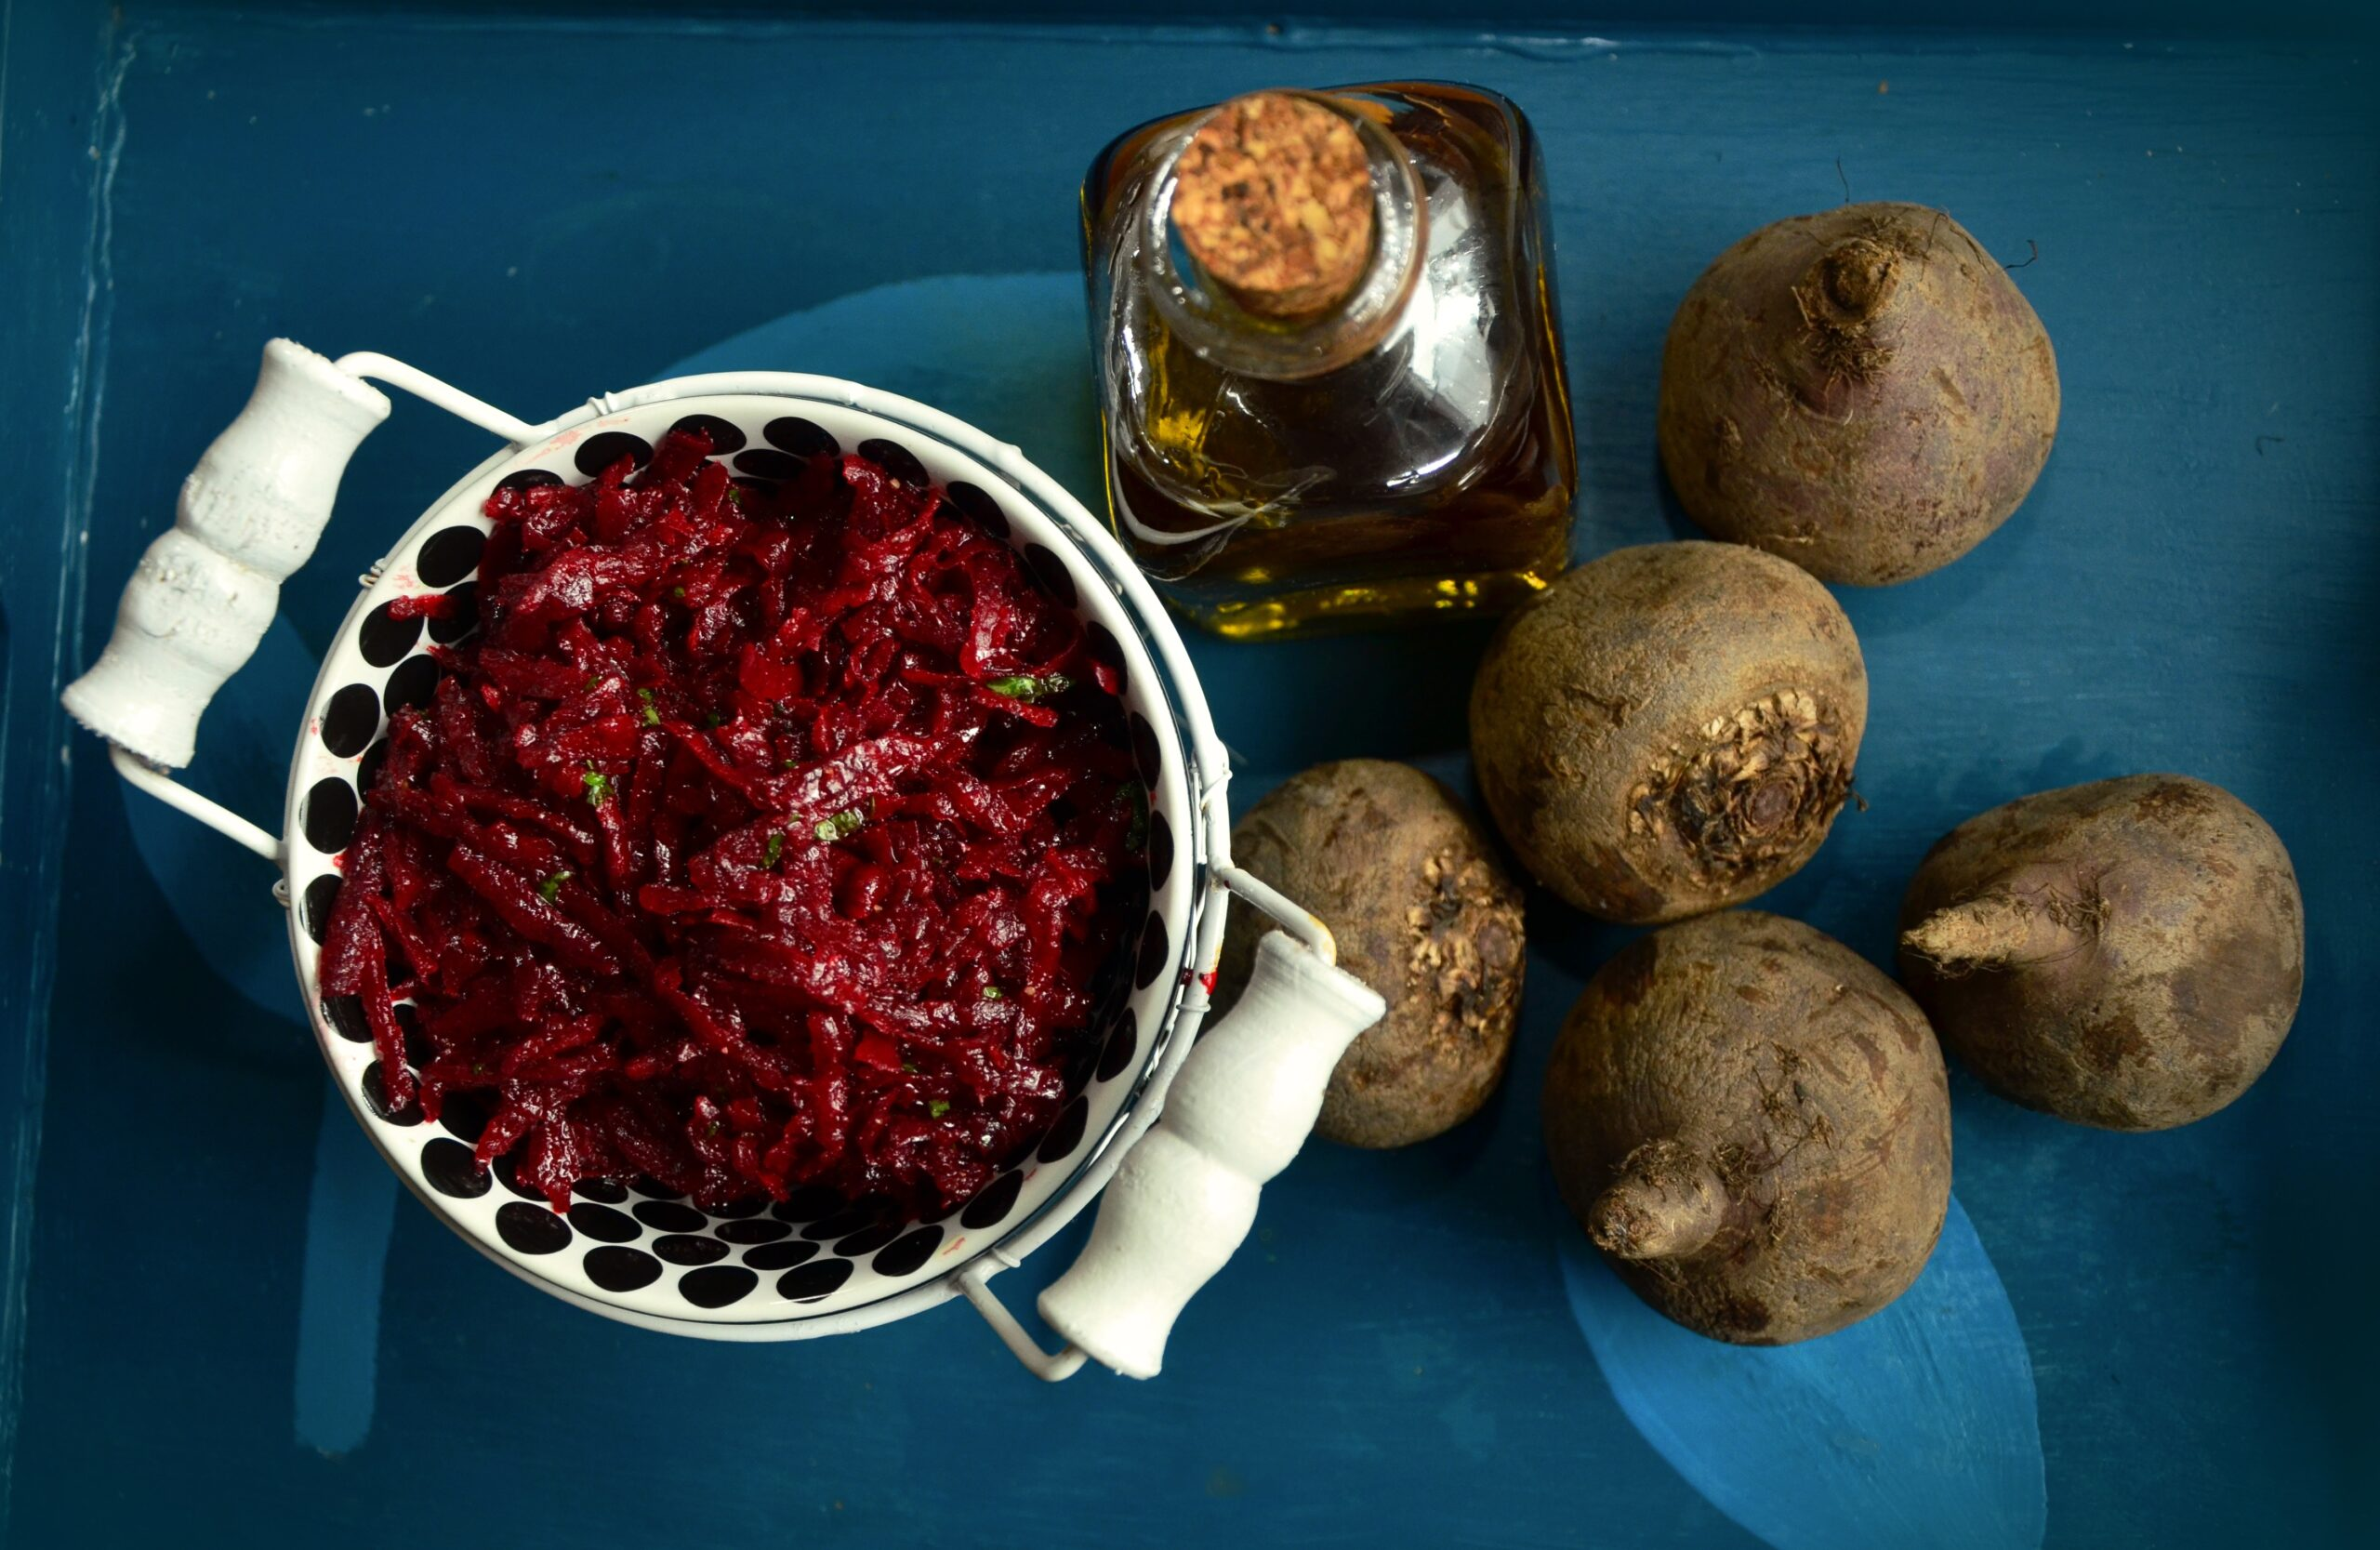 BOM Cumin Spiced Beets with Onion